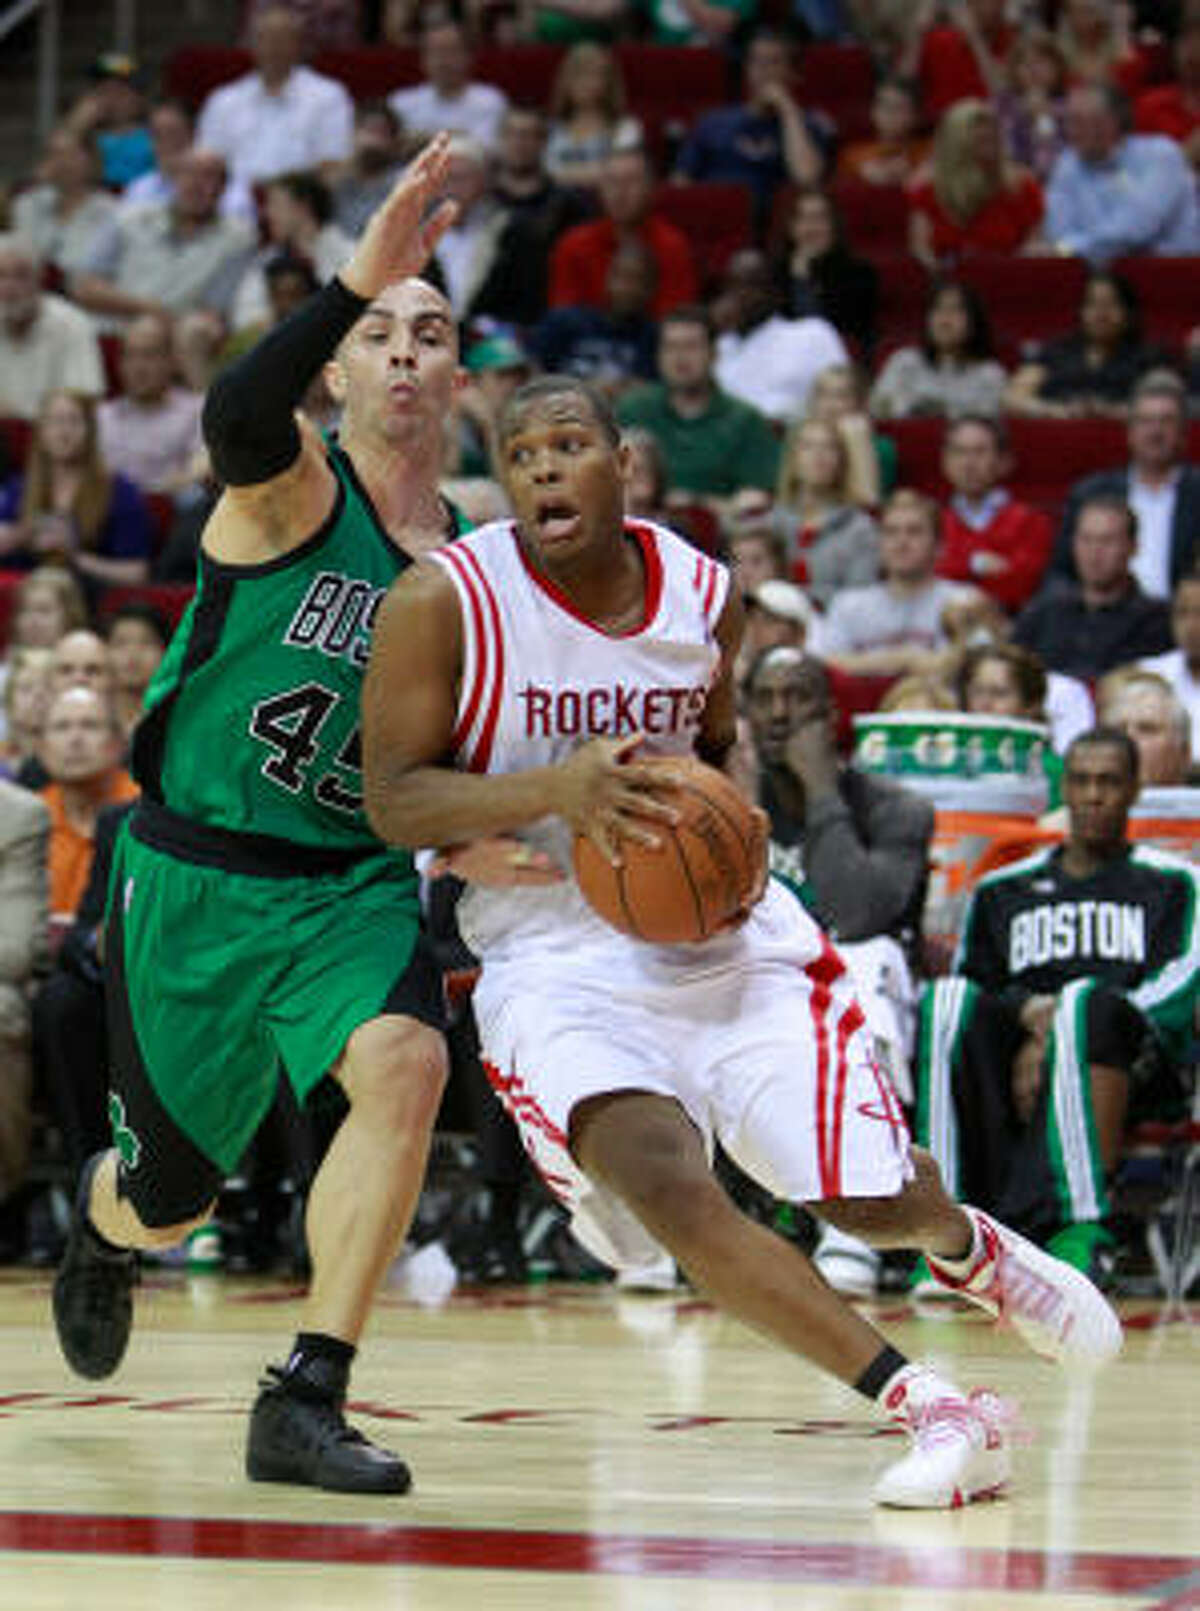 Celtics guard Carlos Arroyo, left, tries to slow down Rockets guard Kyle Lowry in the second half.